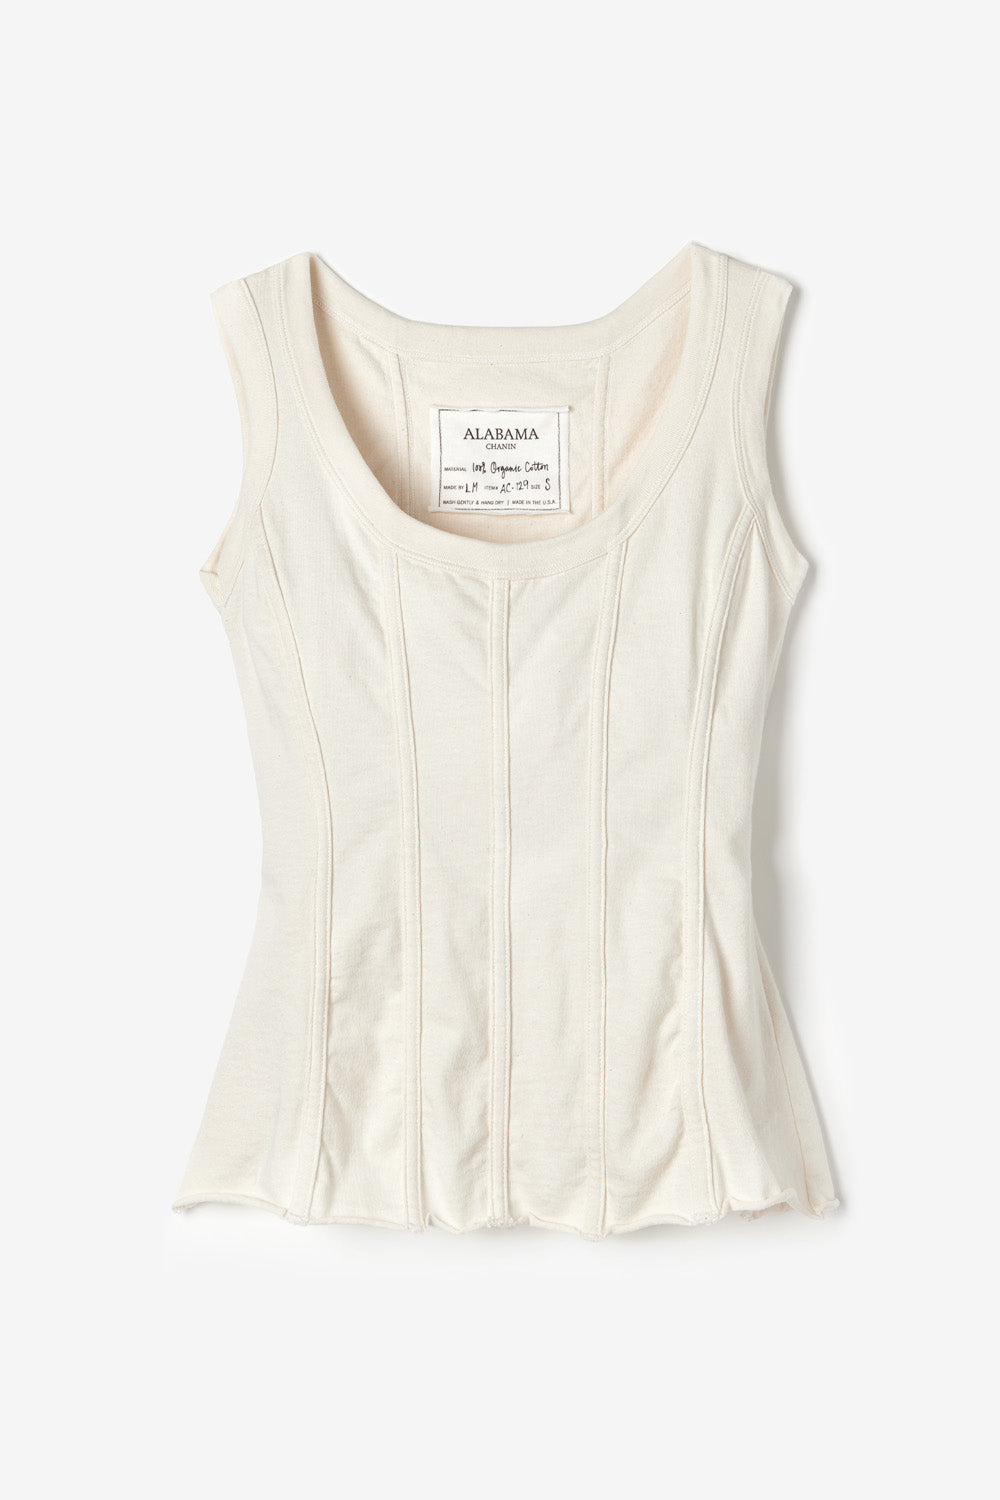 Alabama Chanin The Corset Machine Sewn Fitted Corset Top for Women in Natural